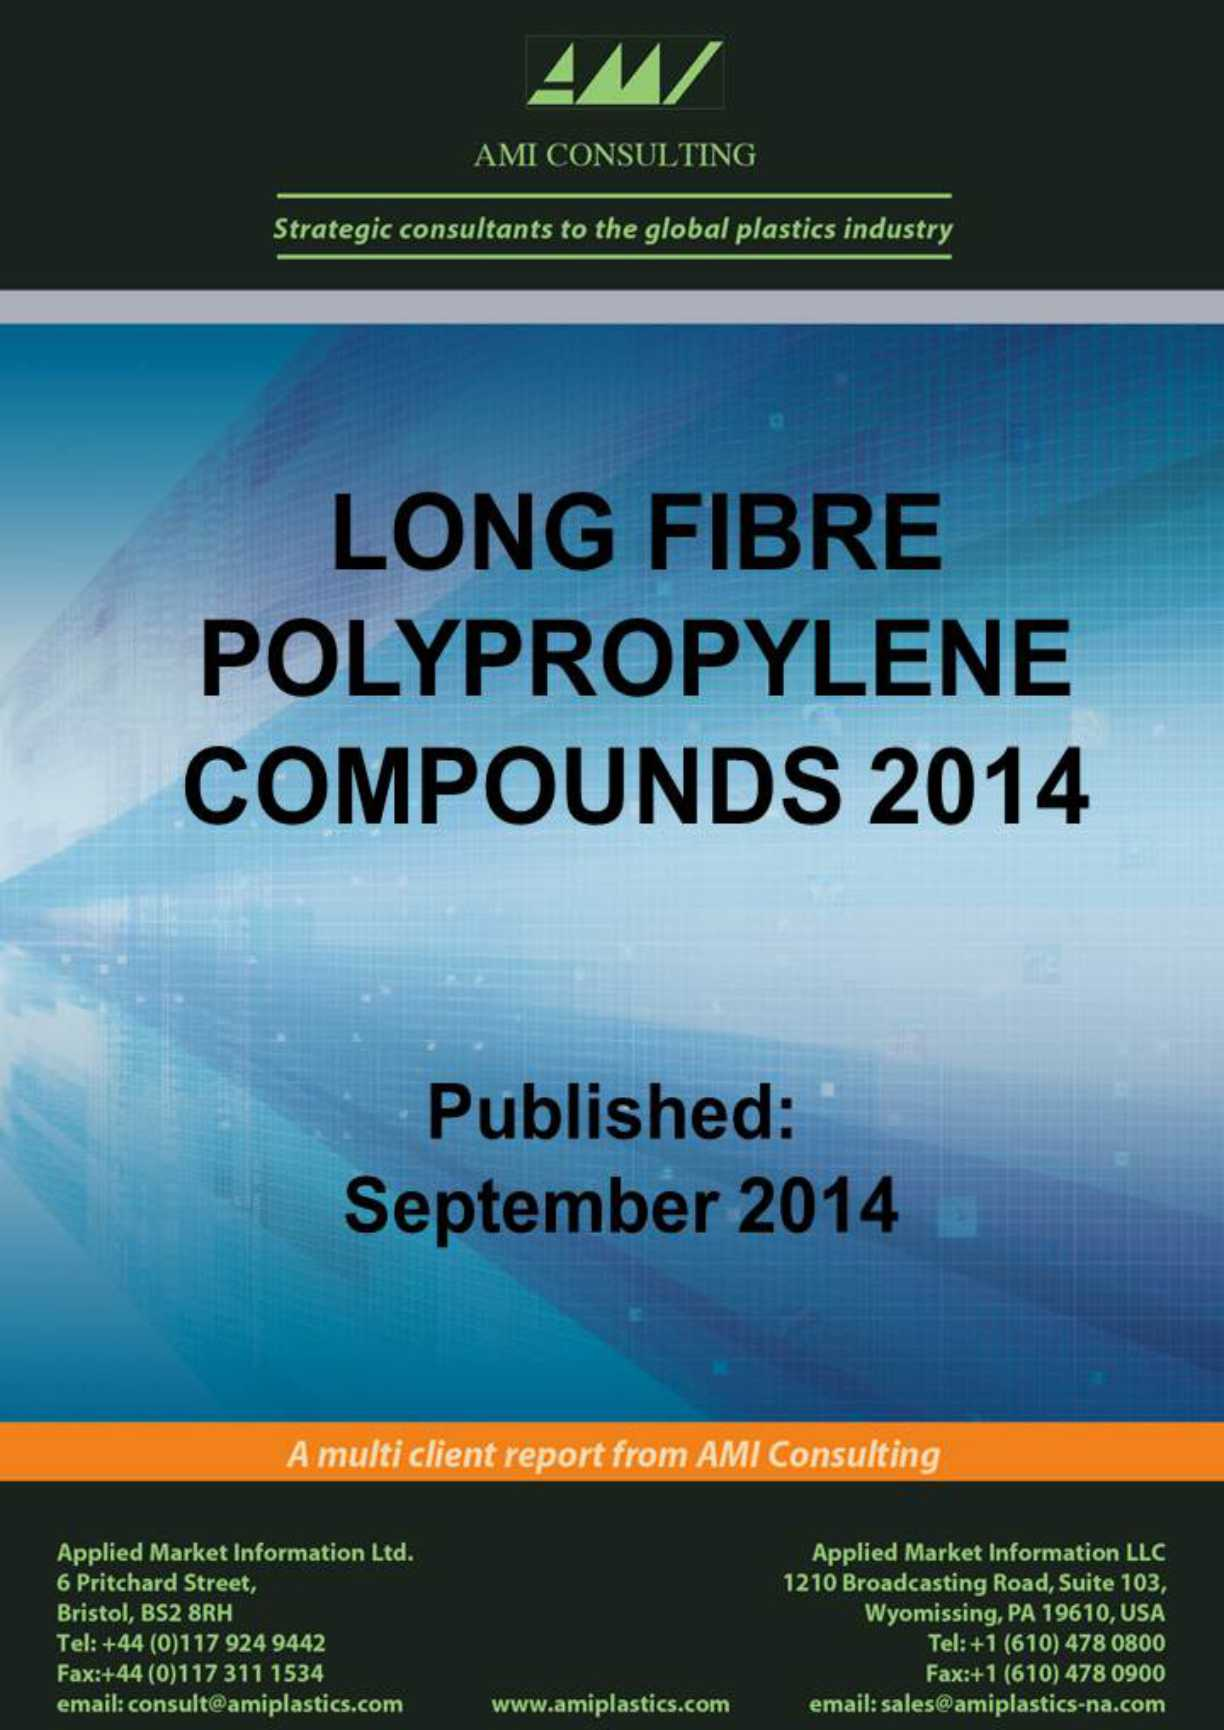 Long fibre polypropylene compounds - the global market